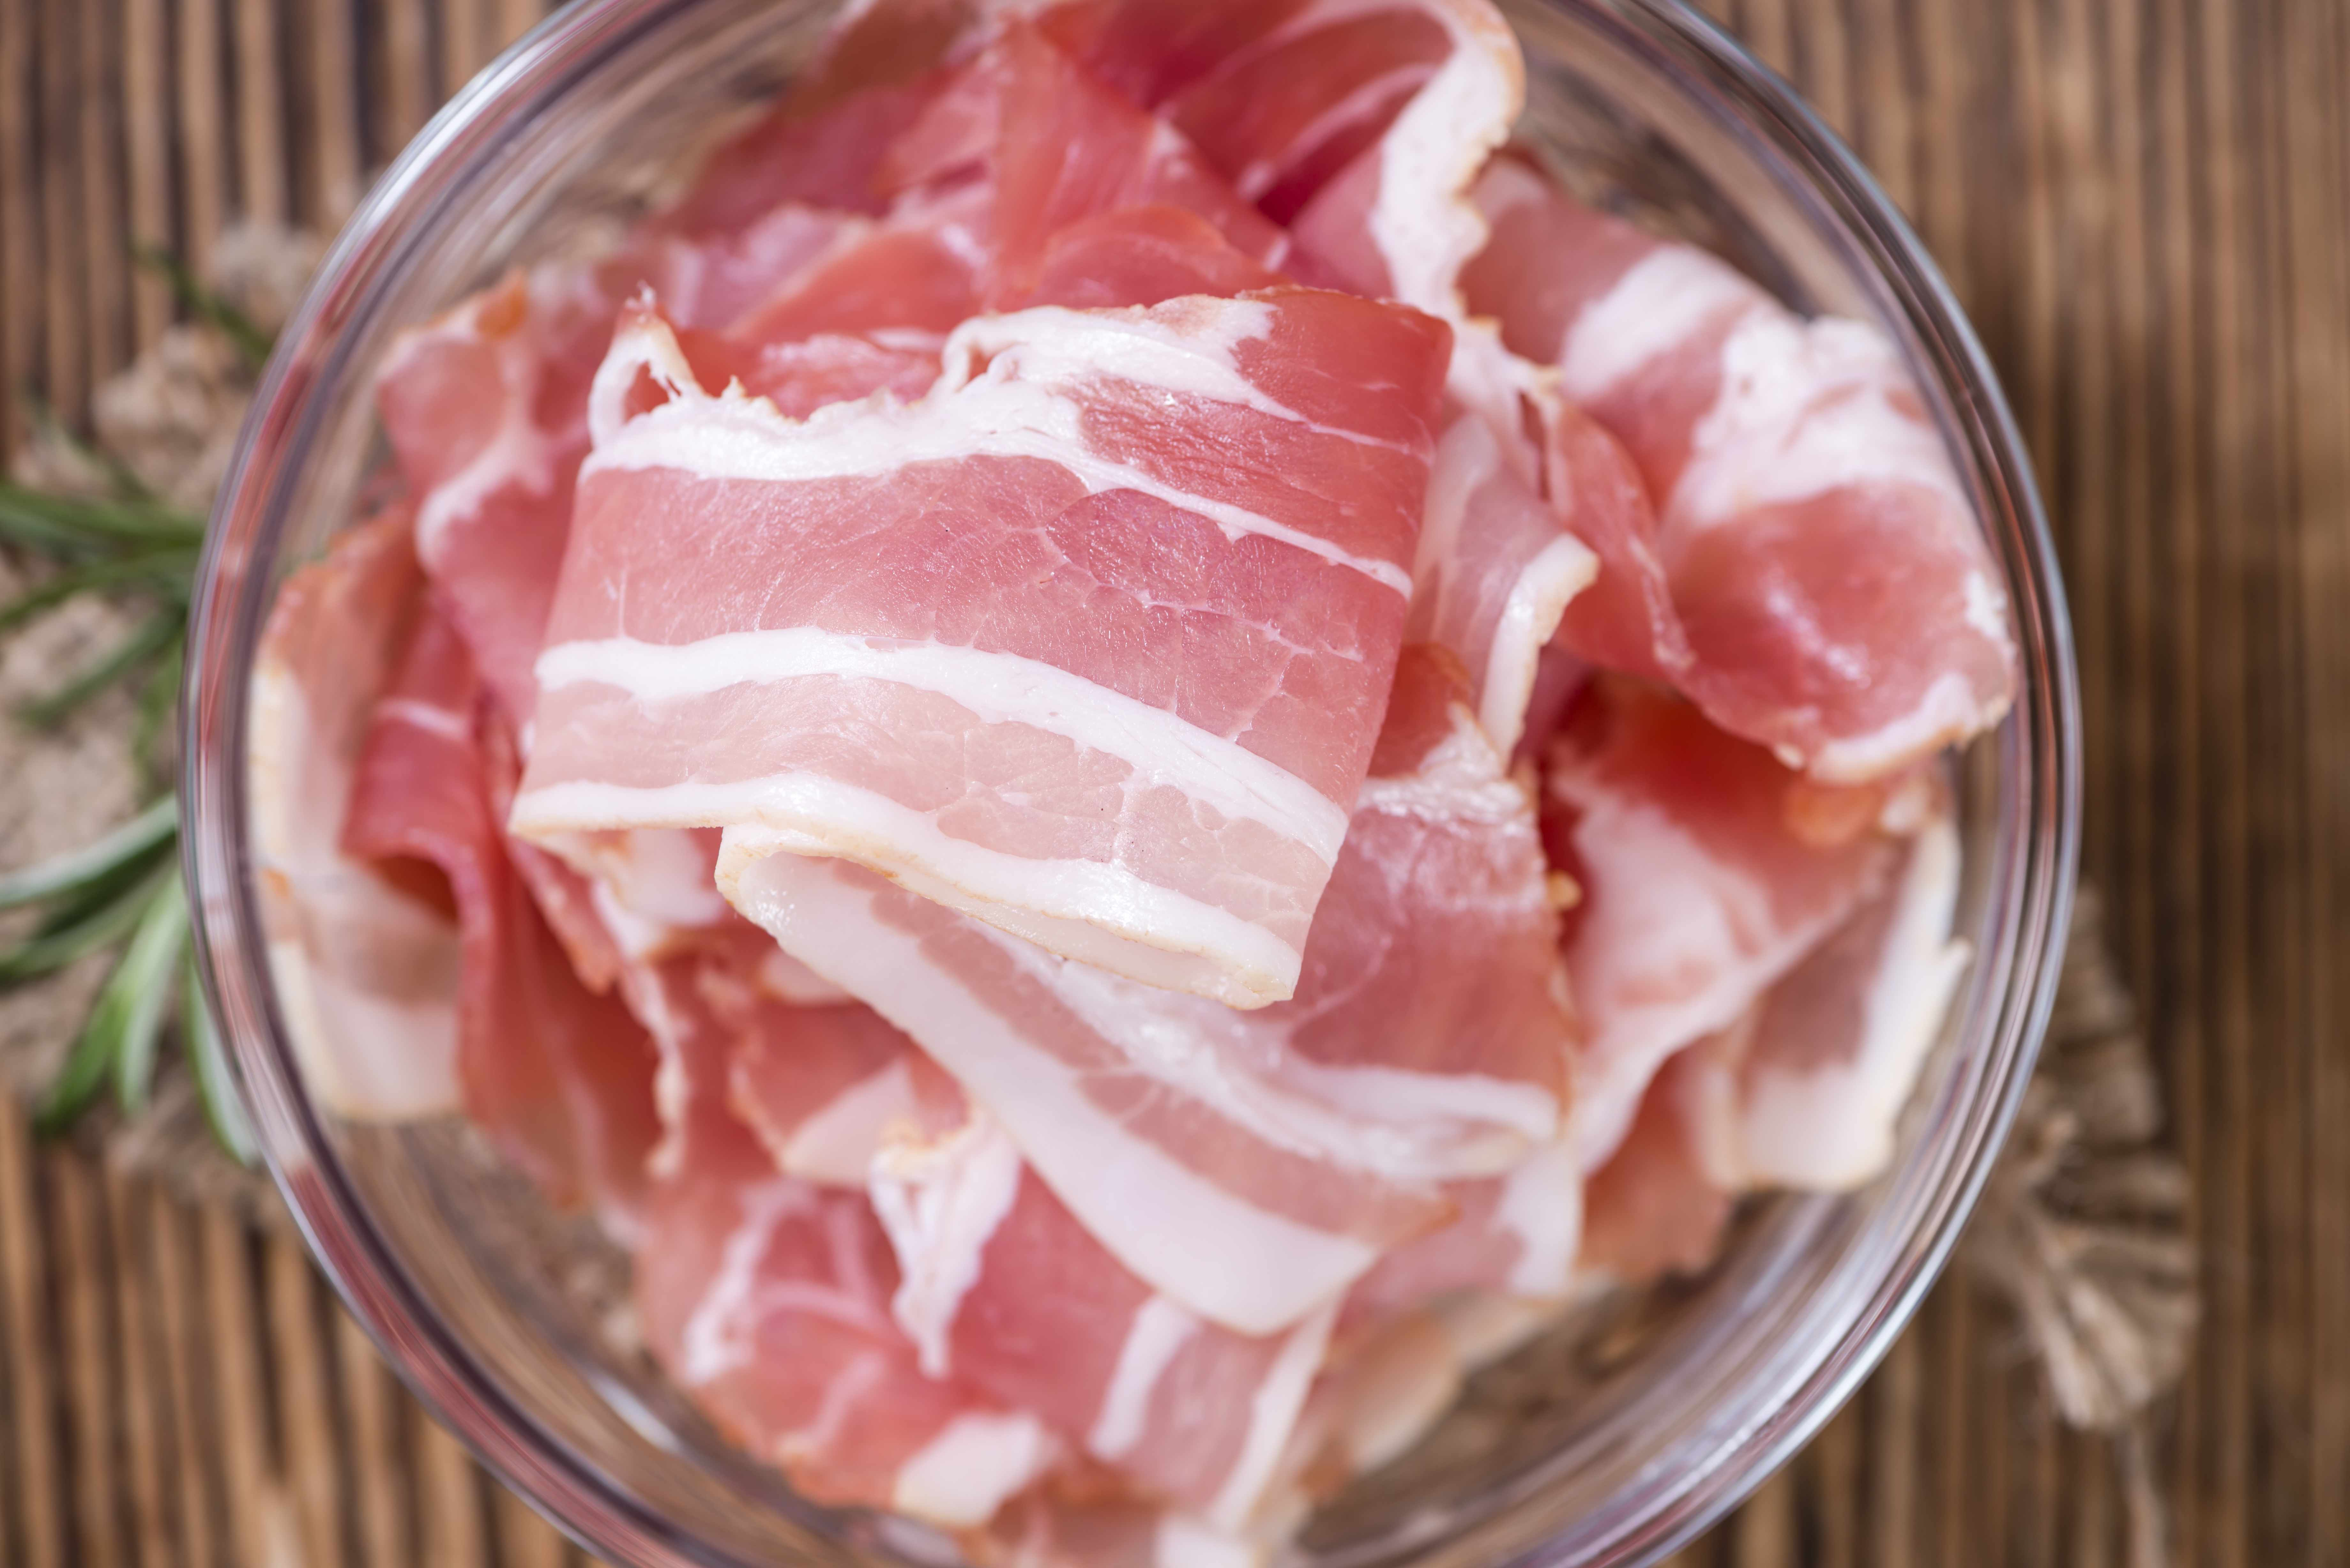 Infectious Diseases A-Z: Will eating undercooked pork make